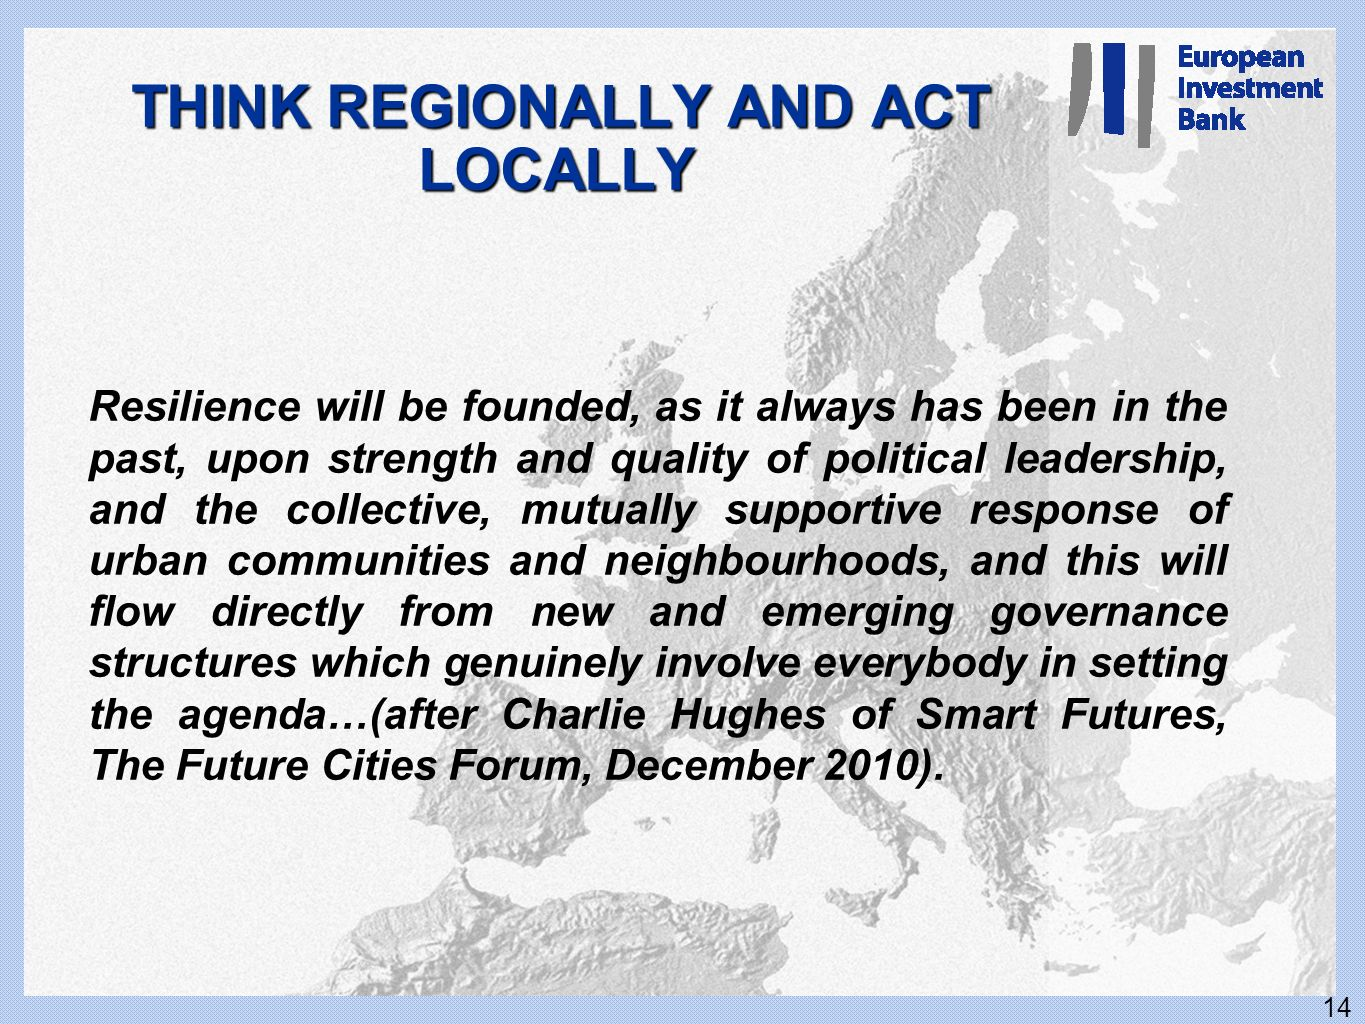 THINK REGIONALLY AND ACT LOCALLY